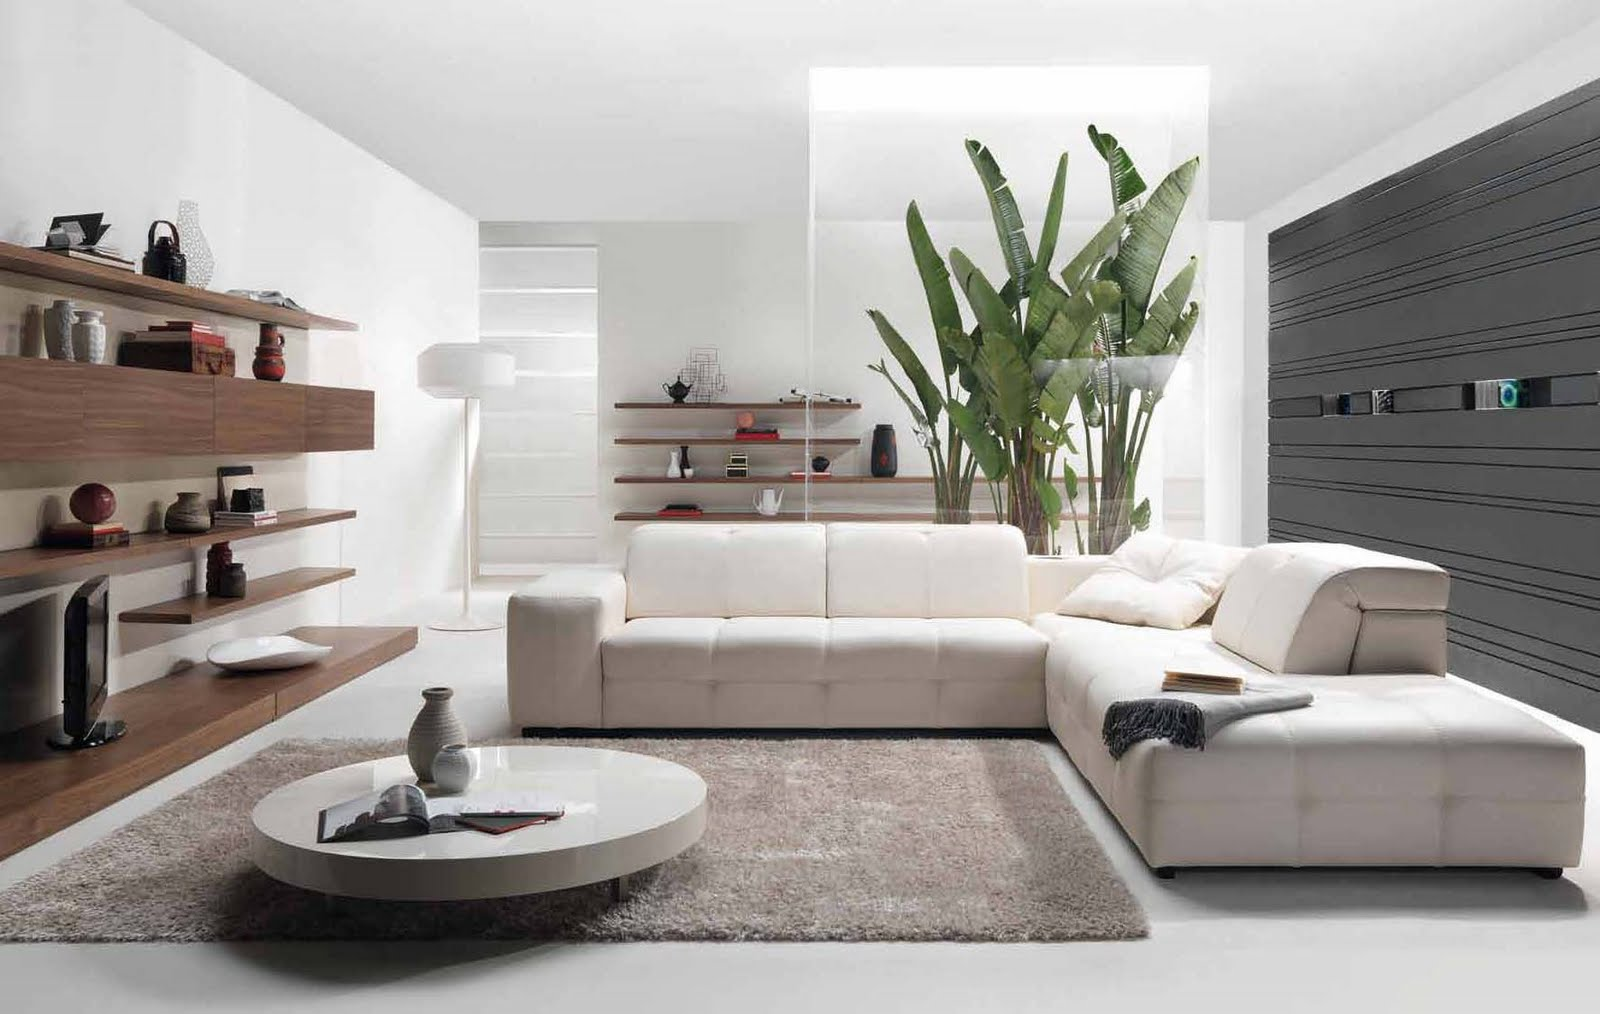 White Living Room Interior Style Modern Kits Furniture